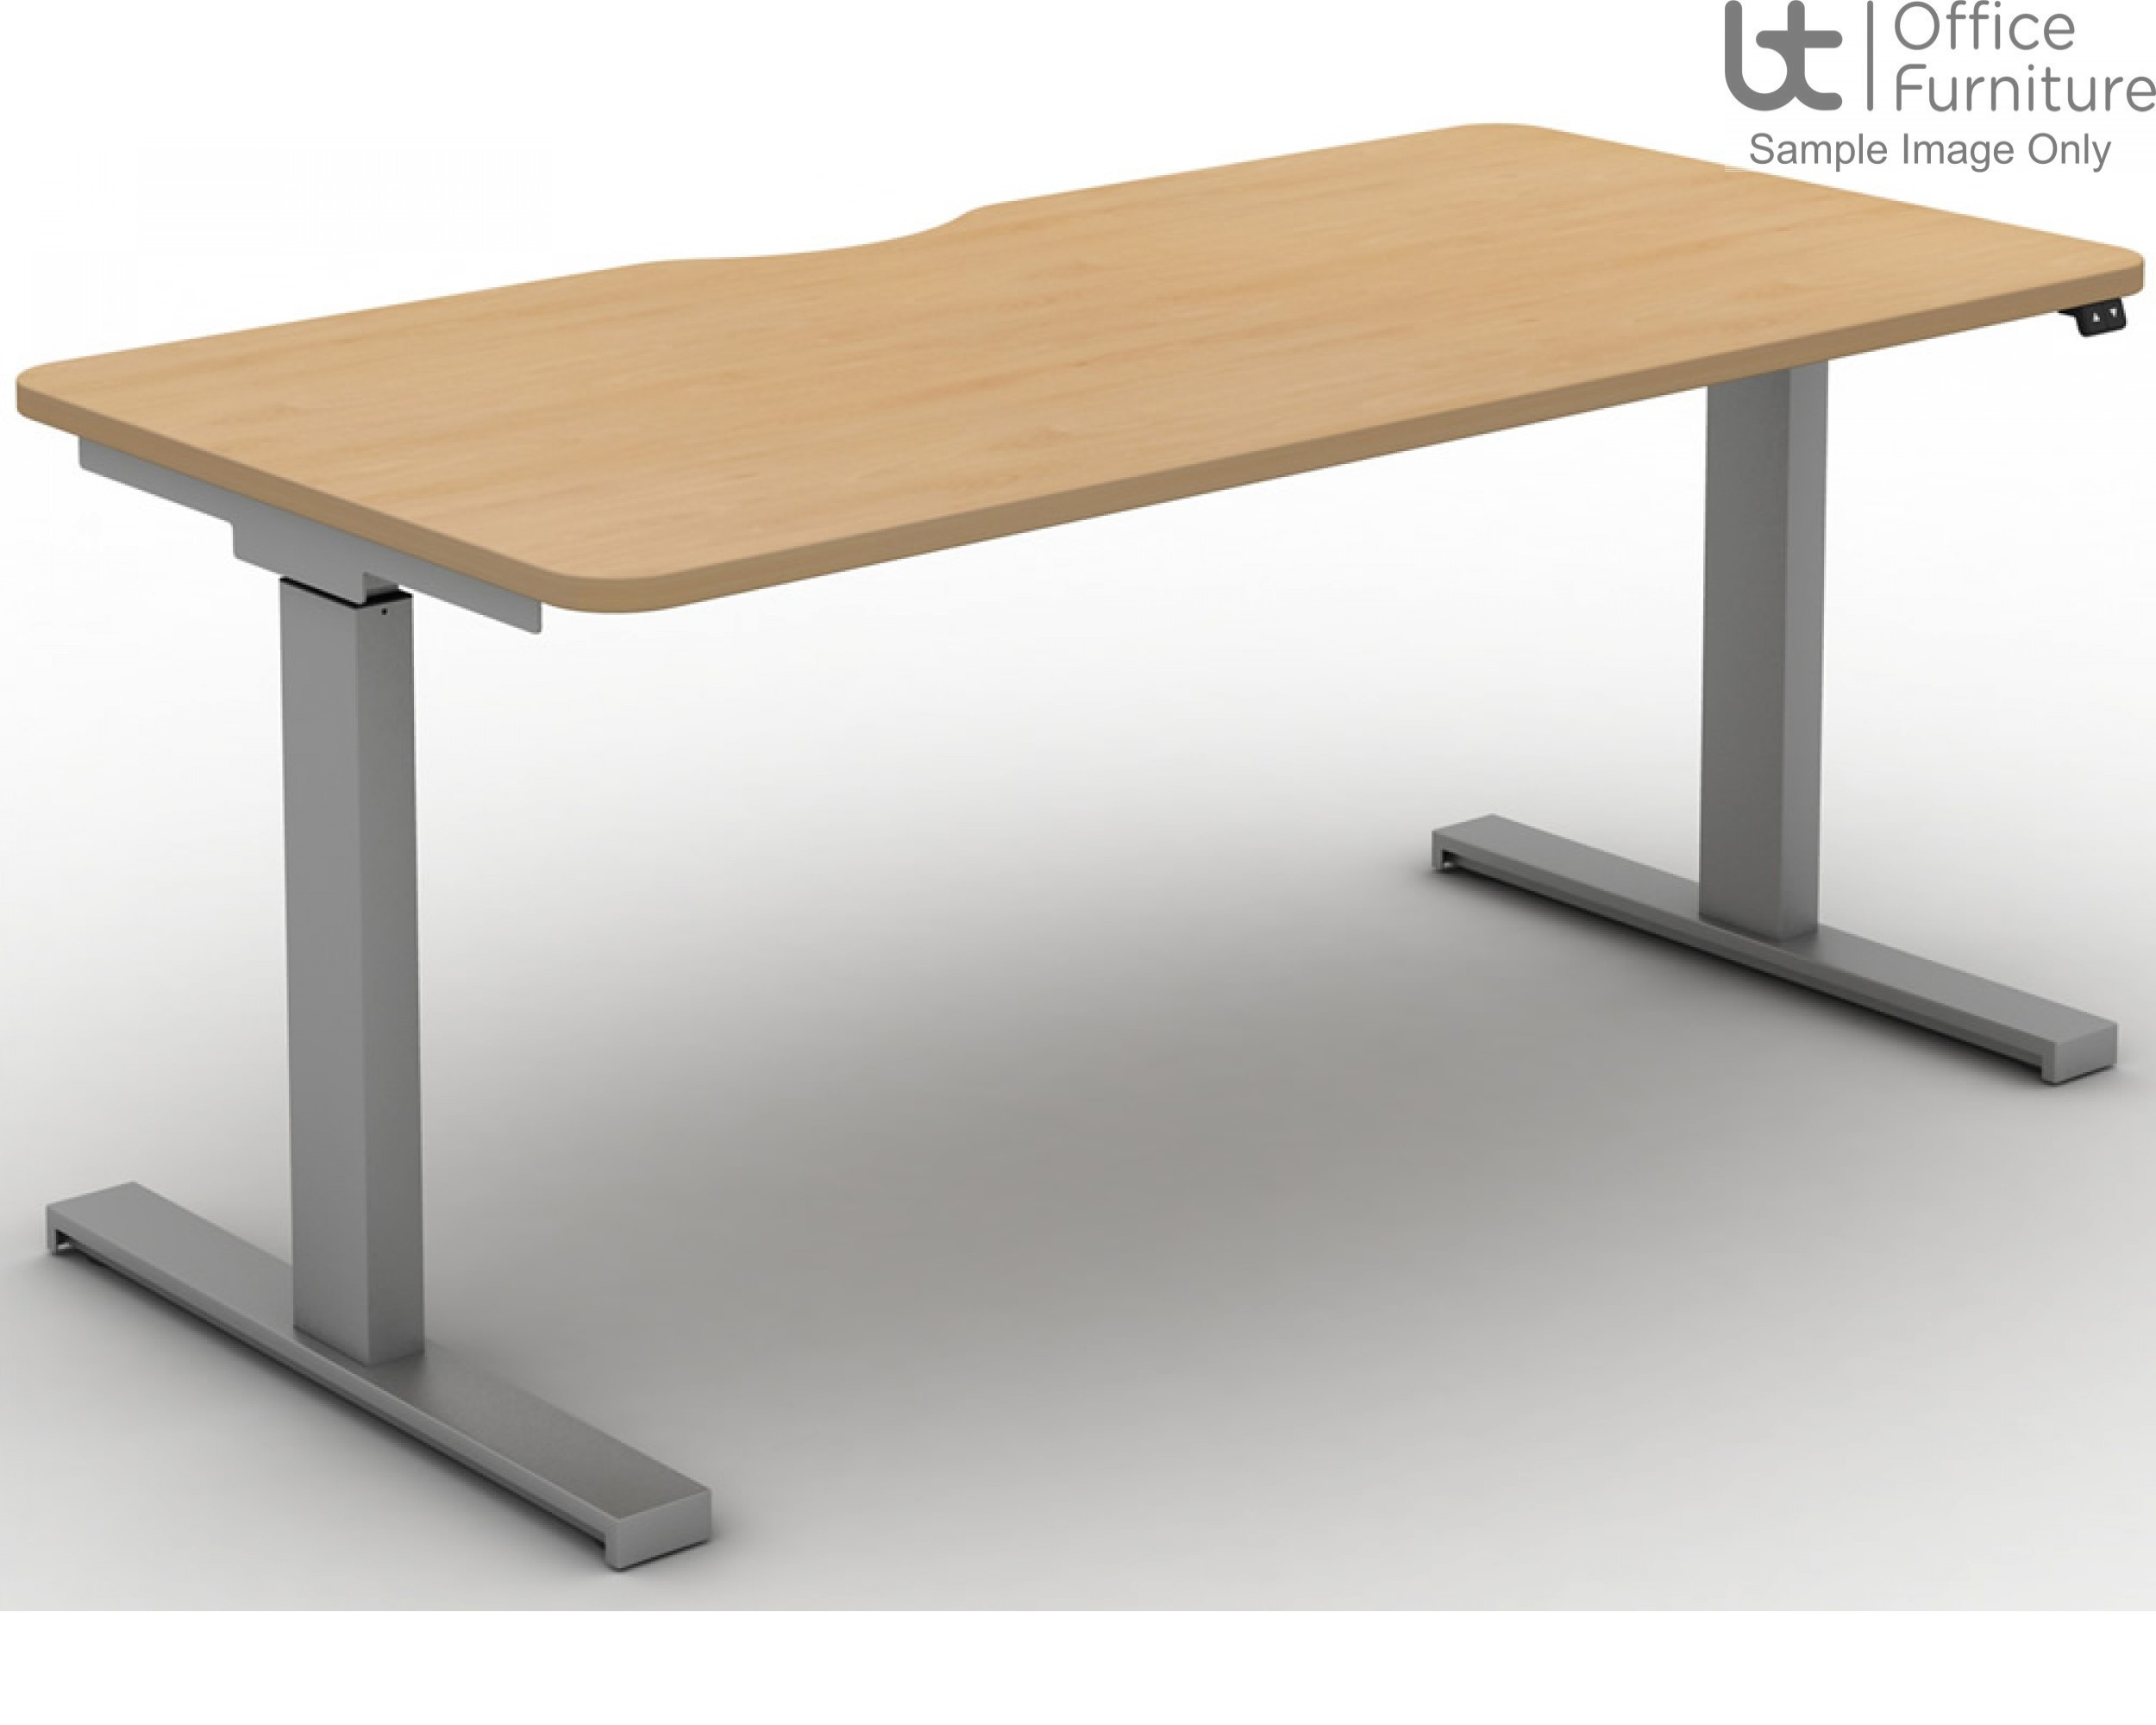 Move Electric Rectangular Height Adjustable Sit-Stand Desk - Scallop & Rounded Corners to Tops